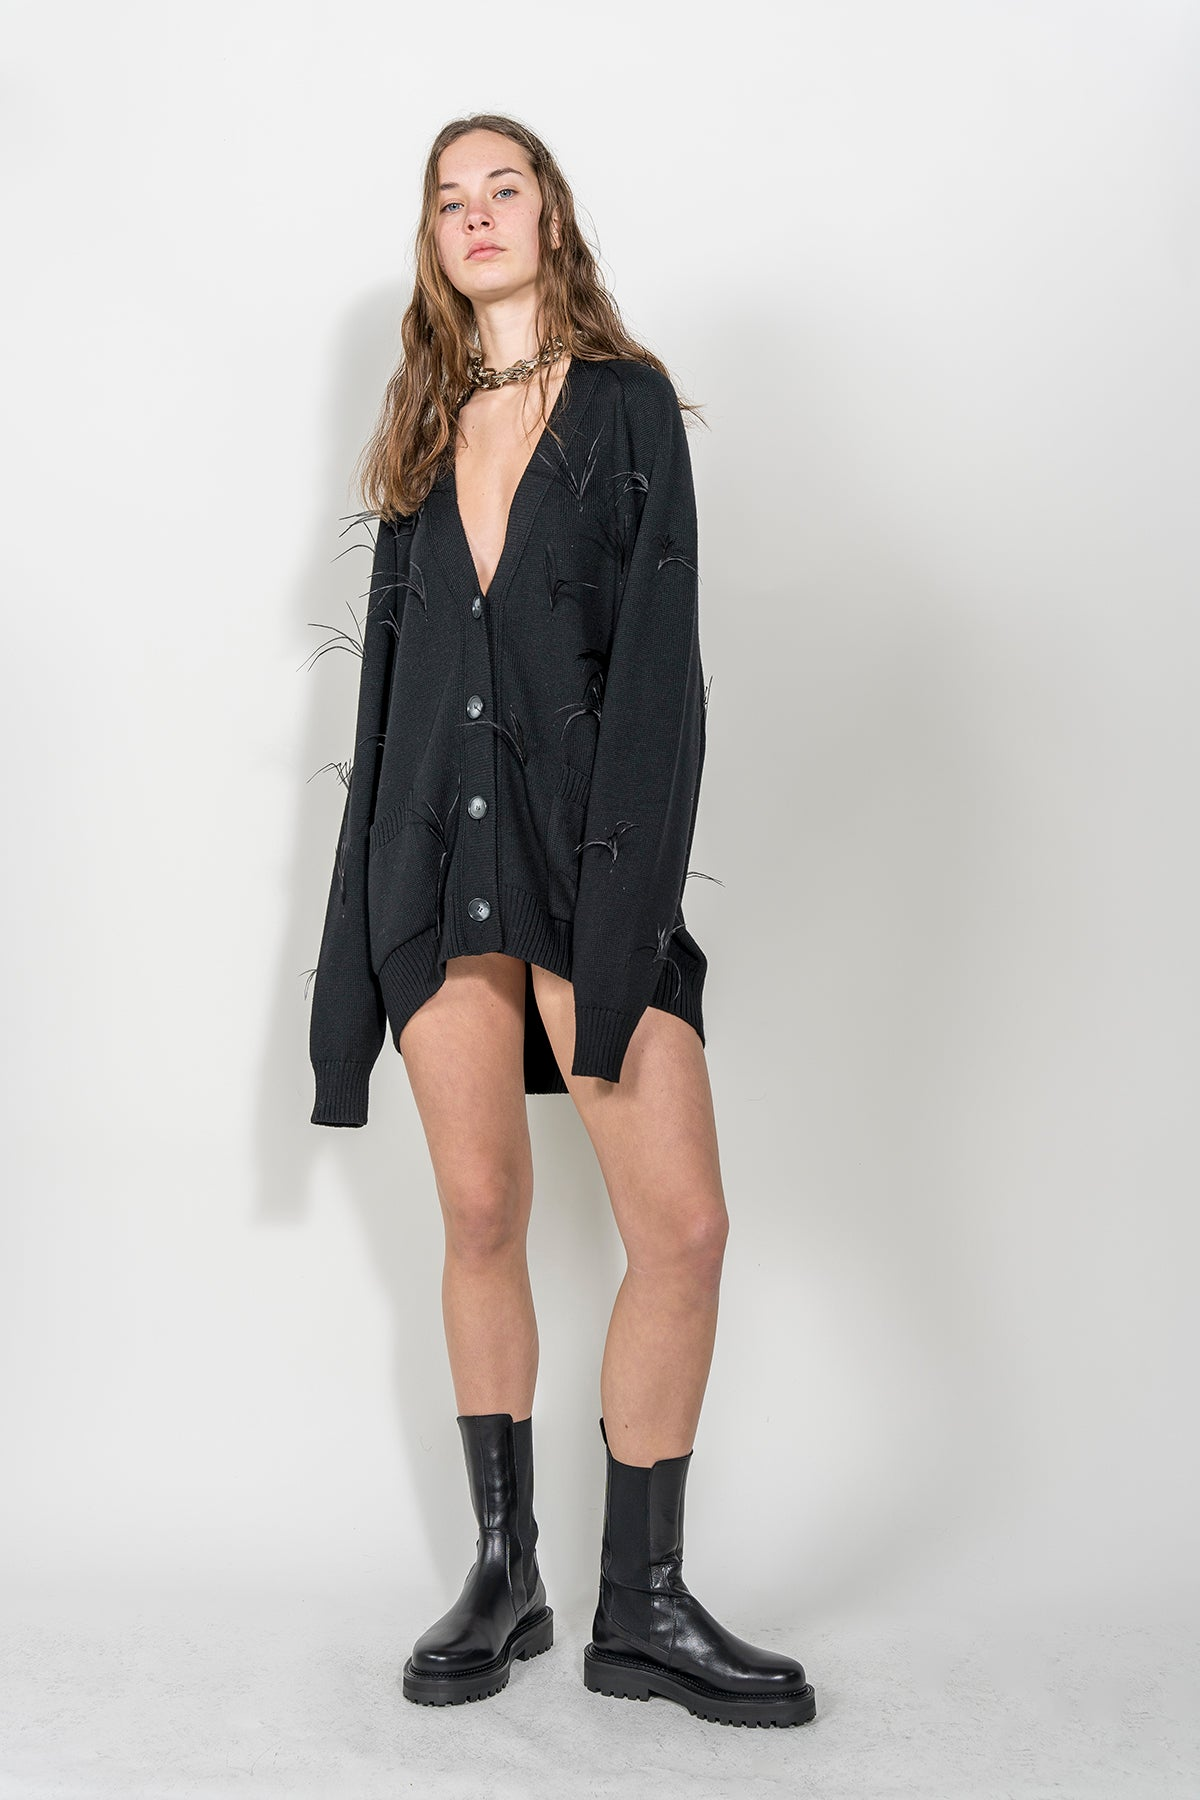 BLACK OVERSIZED CARDIGAN WITH FEATHERS marques almeida.